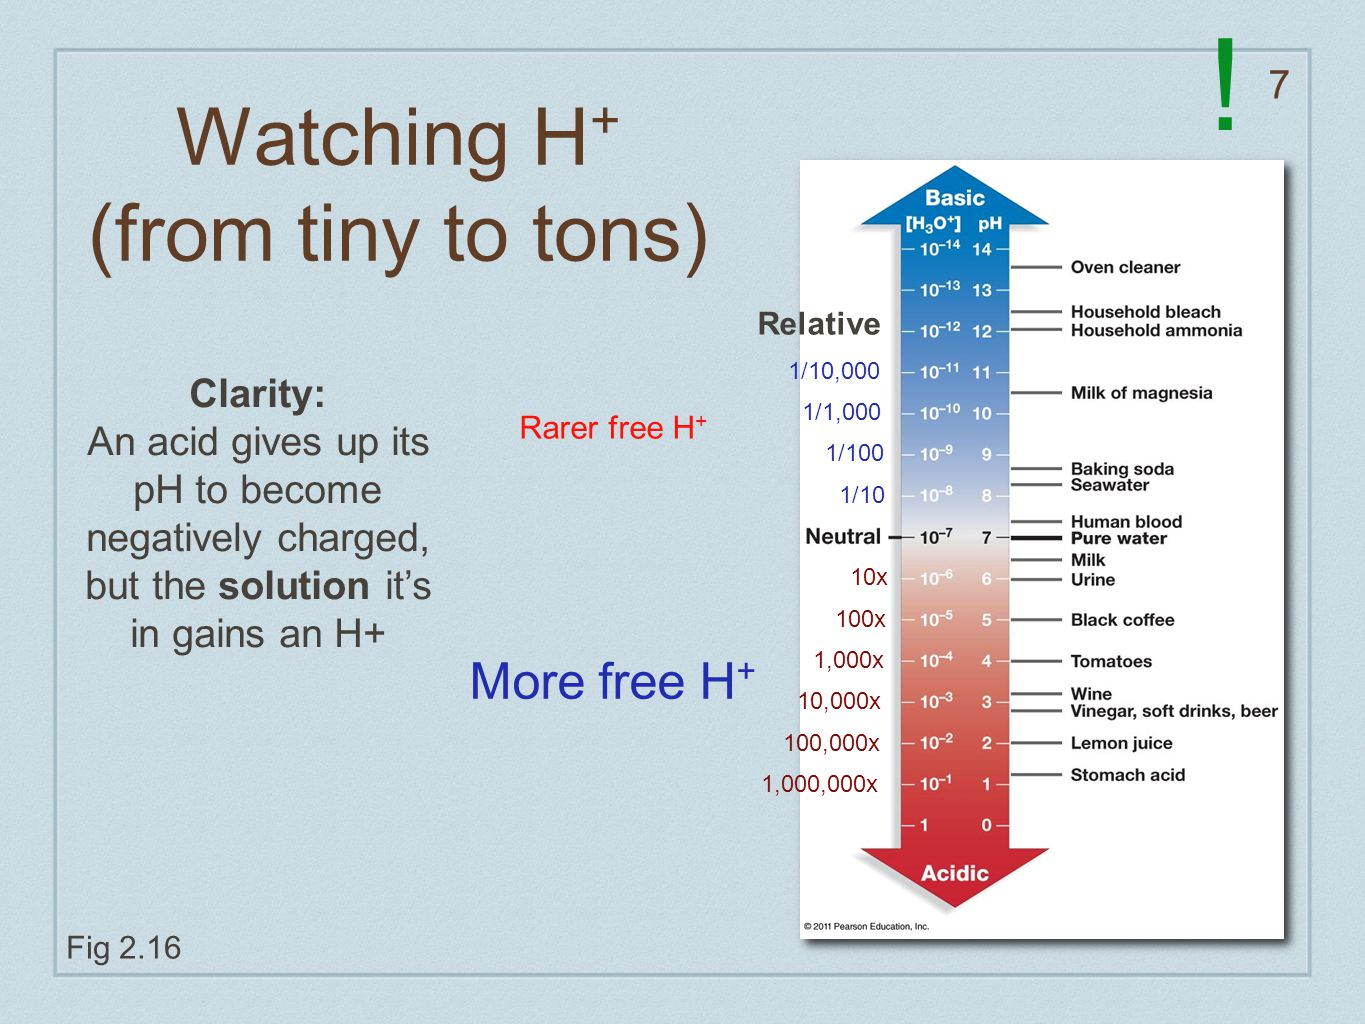 7 Watching H + (from tiny to tons) Fig 2.16 10x 100x 1,000x 10,000x 100,000x 1,000,000x 1/10 1/100 1/1,000 1/10,000 Relative More free H + Rarer free H + Clarity: An acid gives up its pH to become negatively charged, but the solution it's in gains an H+ !